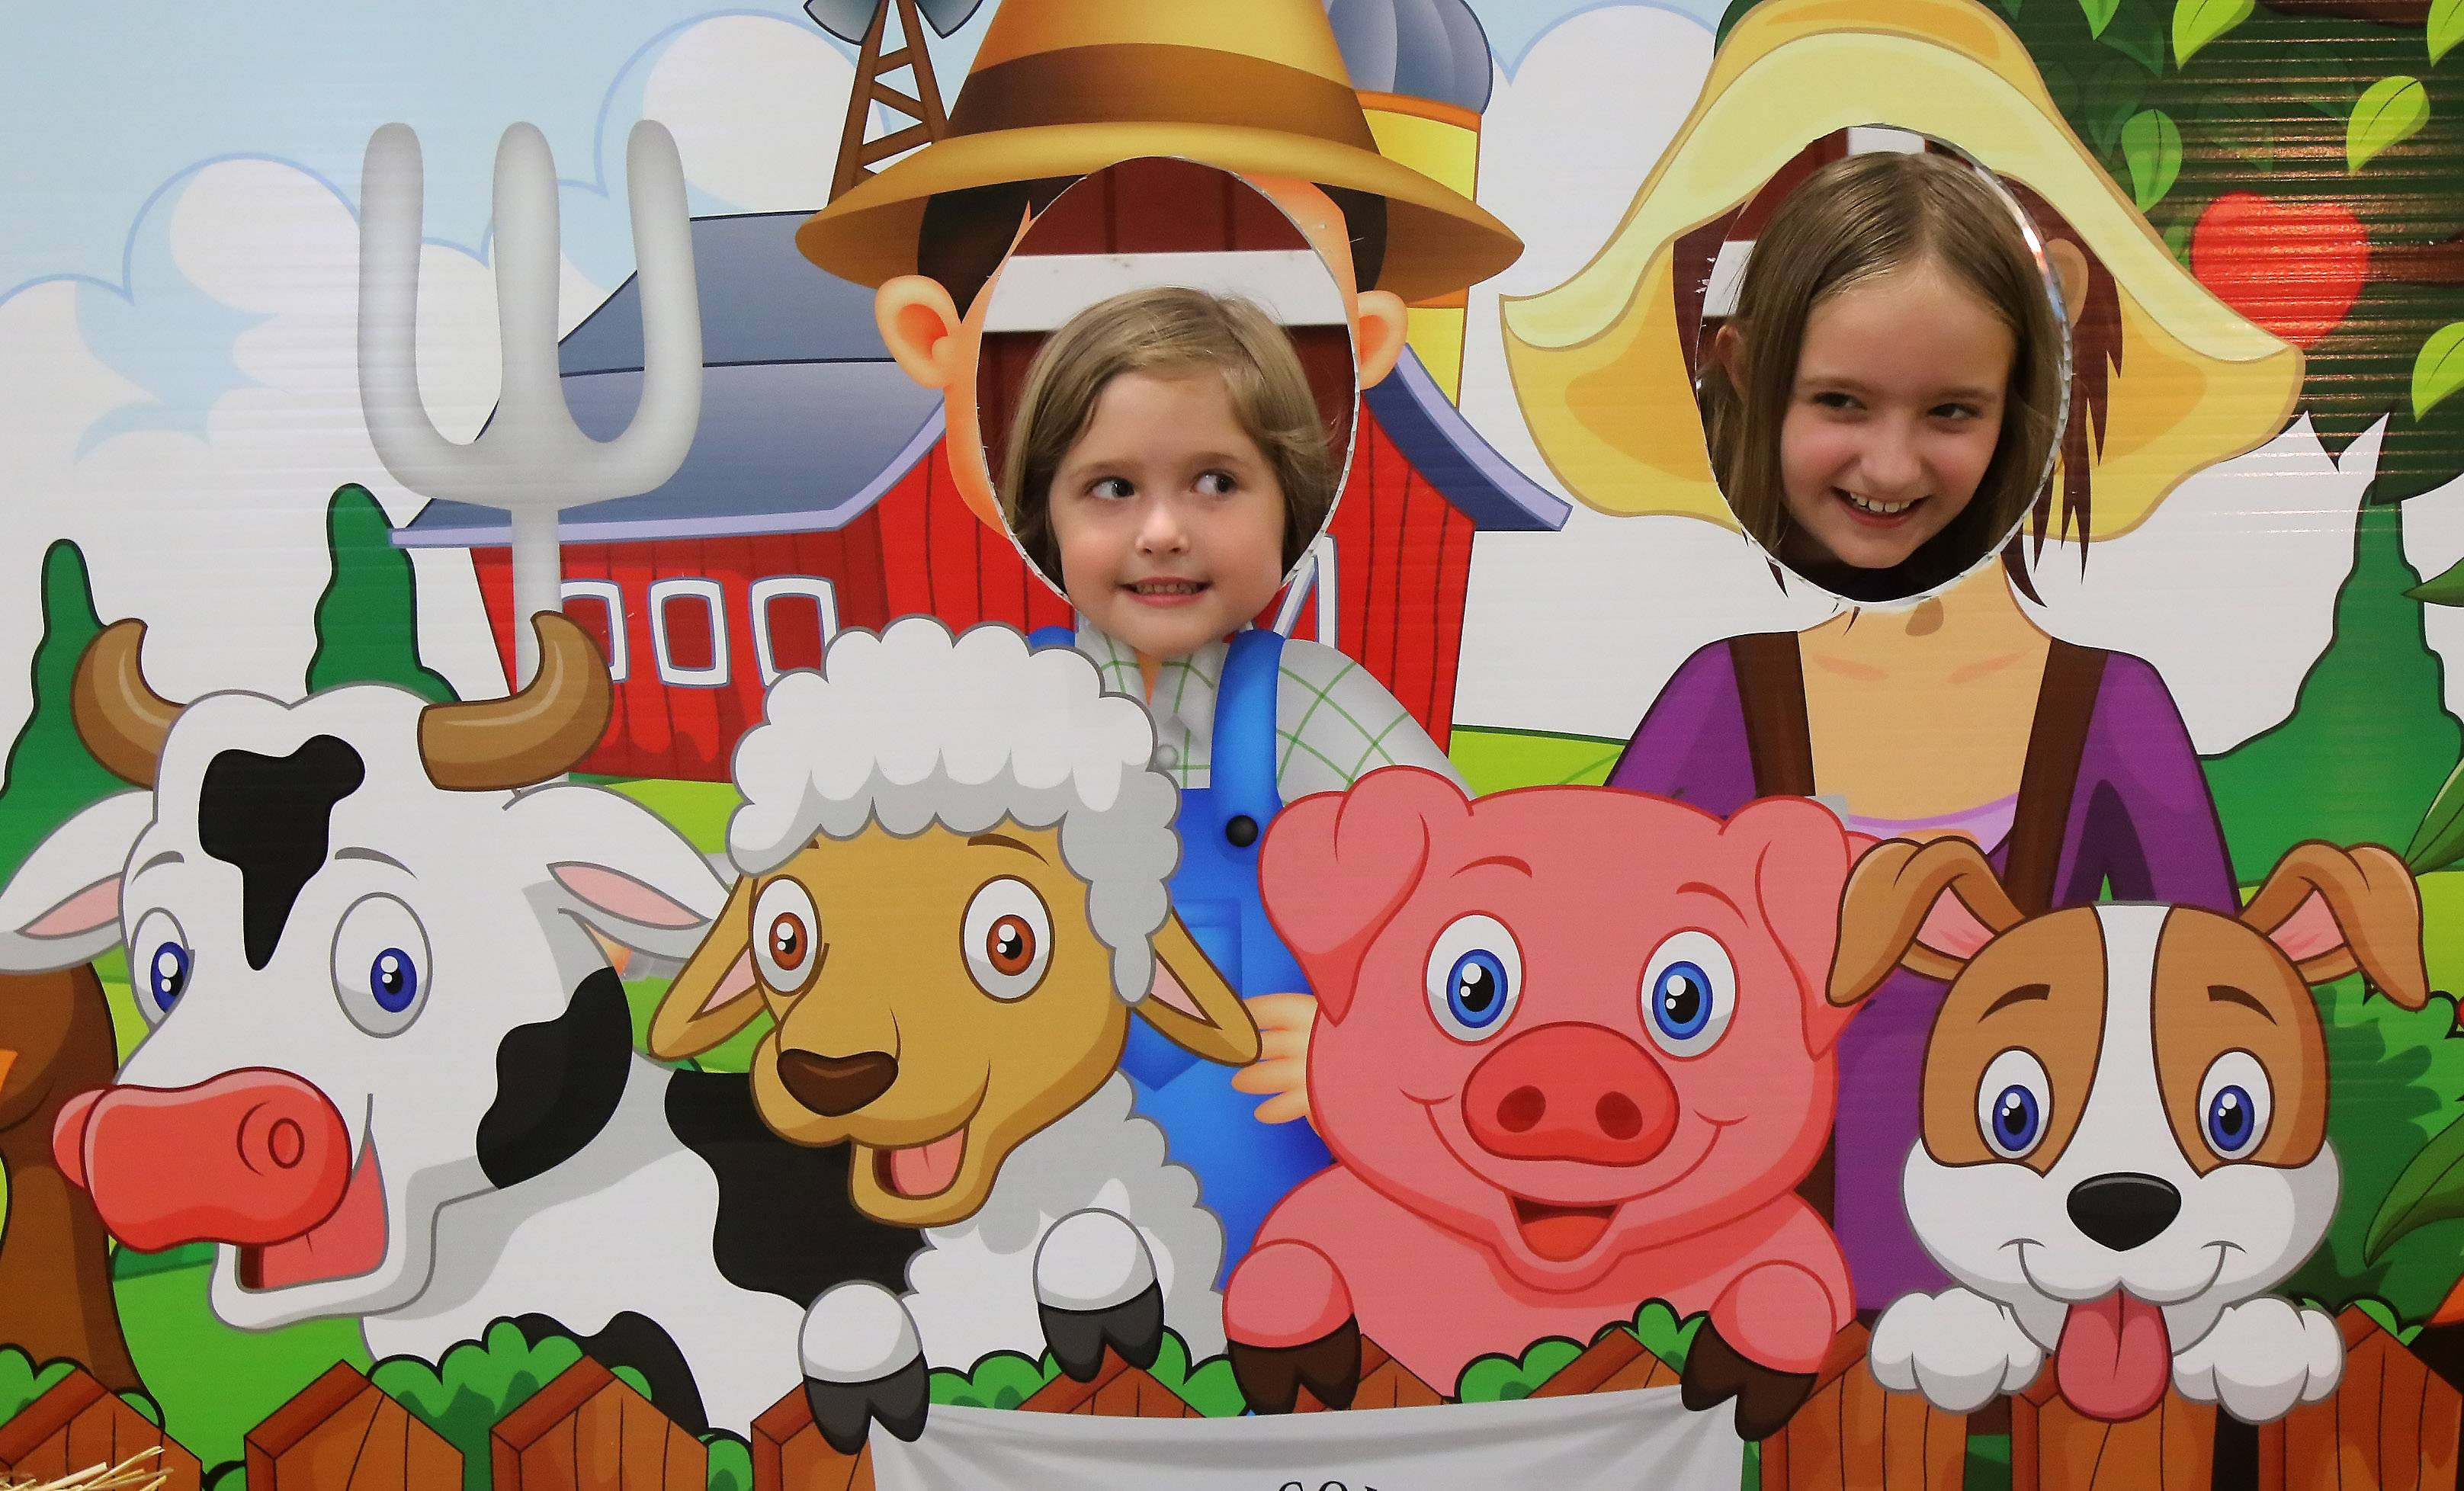 Clara Christner, 4, left, and Hailey Christner, 9, of Antioch pose for a picture with farm animals at the Ag Adventure! Wednesday during the Lake County Fair in Grayslake. The interactive miniature farm, hosted by the Lake County Farm Bureau, shows children how to milk a cow, ride a tractor and plant vegetables.